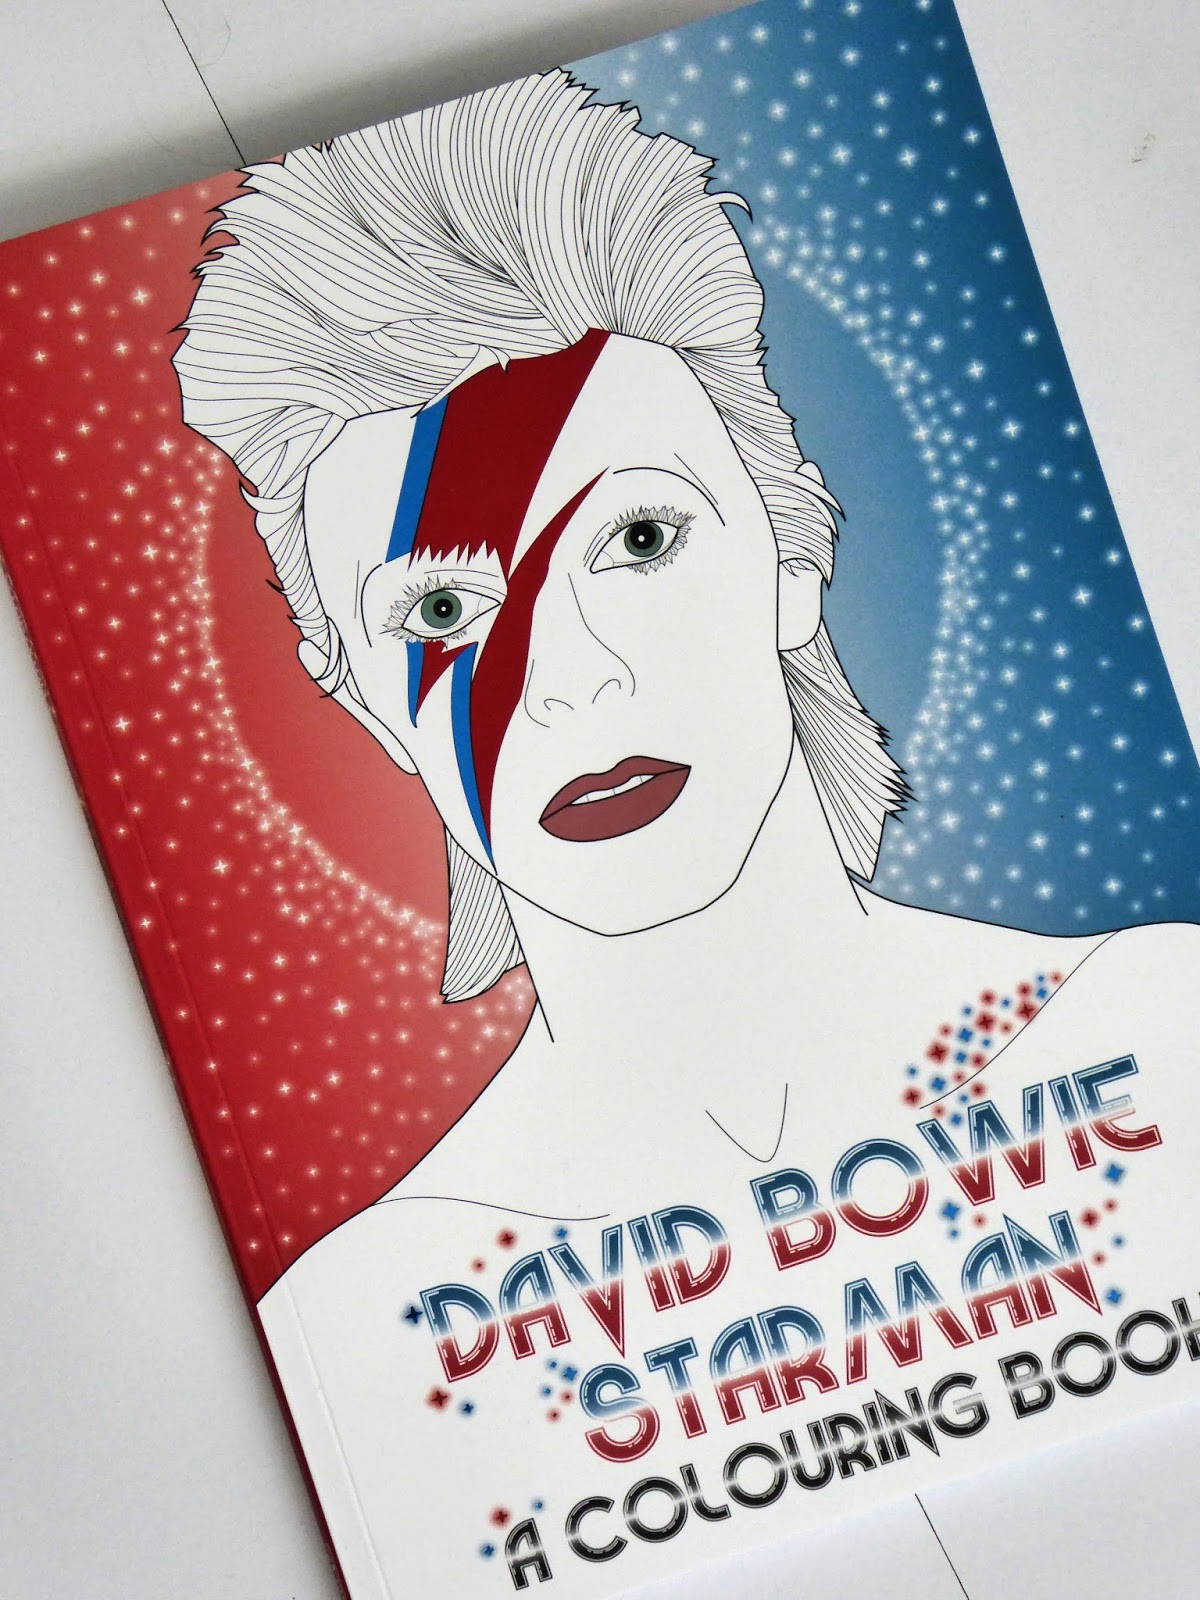 Review David Bowie Starman A Colouring Book Hollie In Wanderlust